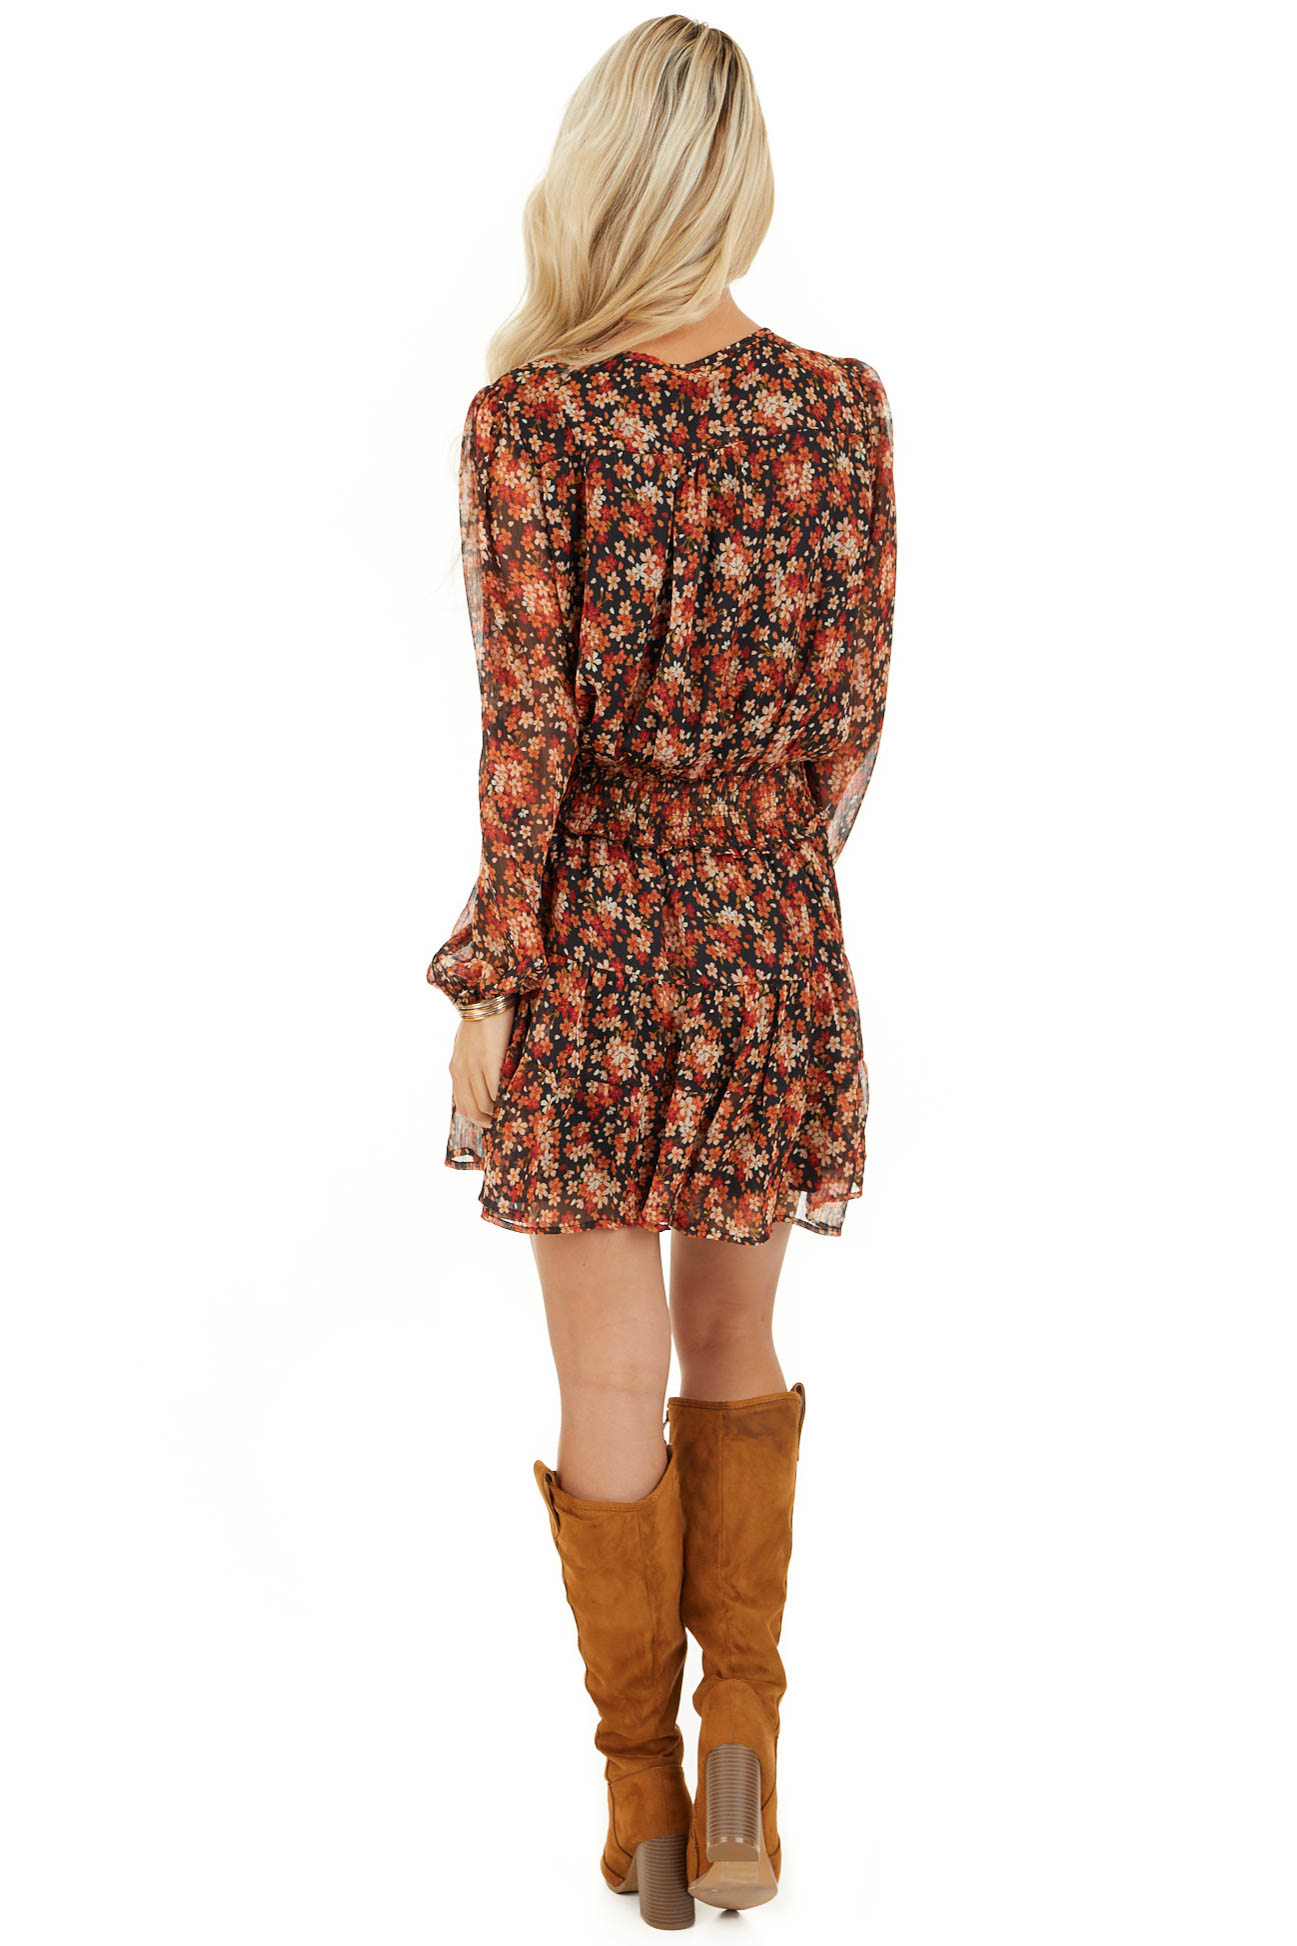 Tawny and Black Floral Print Dress with Smocked Waist back full body